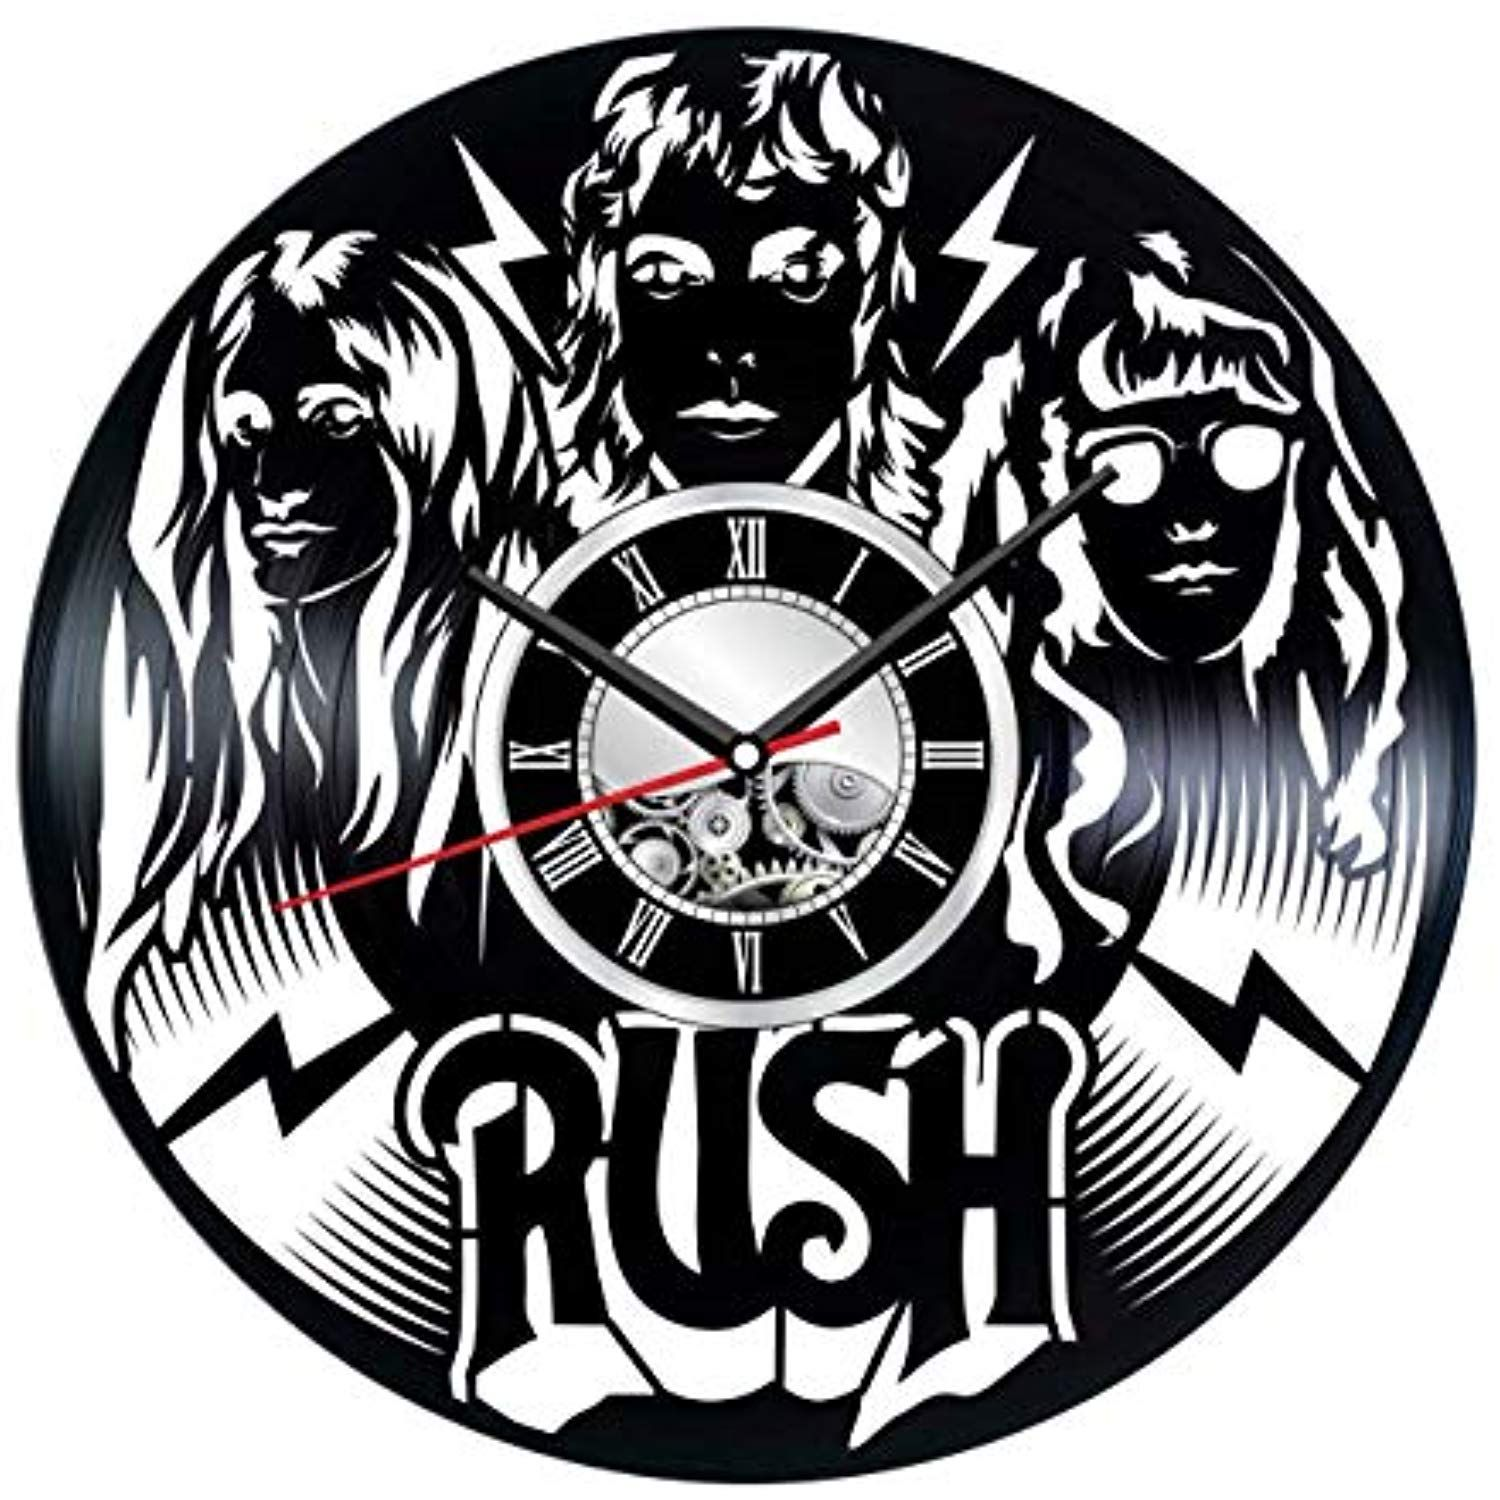 Rush Wall Clock Made Of Vinyl Record Stylish Clock And Amazing Music Gifts Idea A Unique Home Decor Living Room Art How To Make Wall Clock Presents For Men